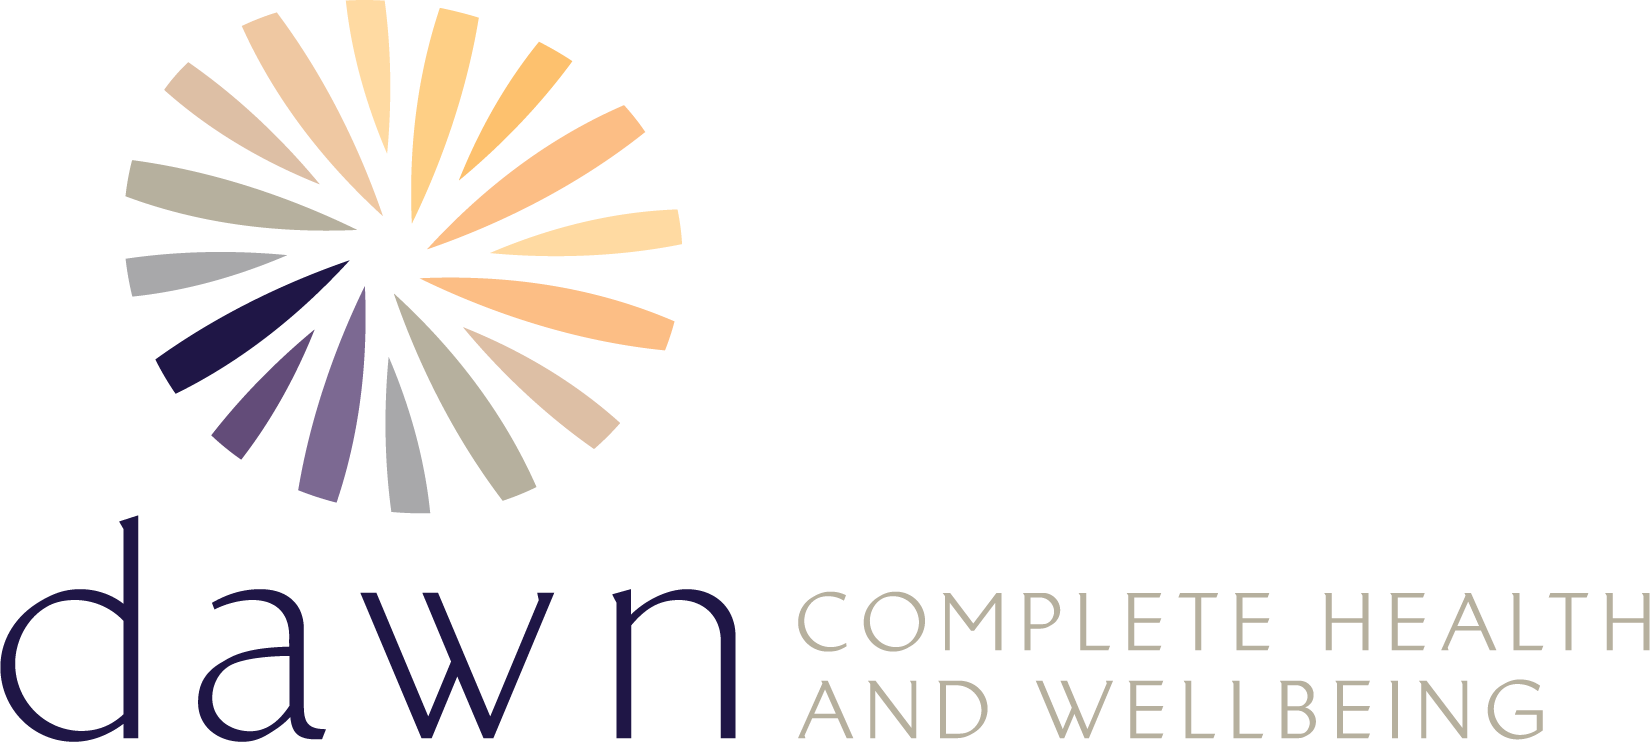 Dawn Complete Health and Wellbeing